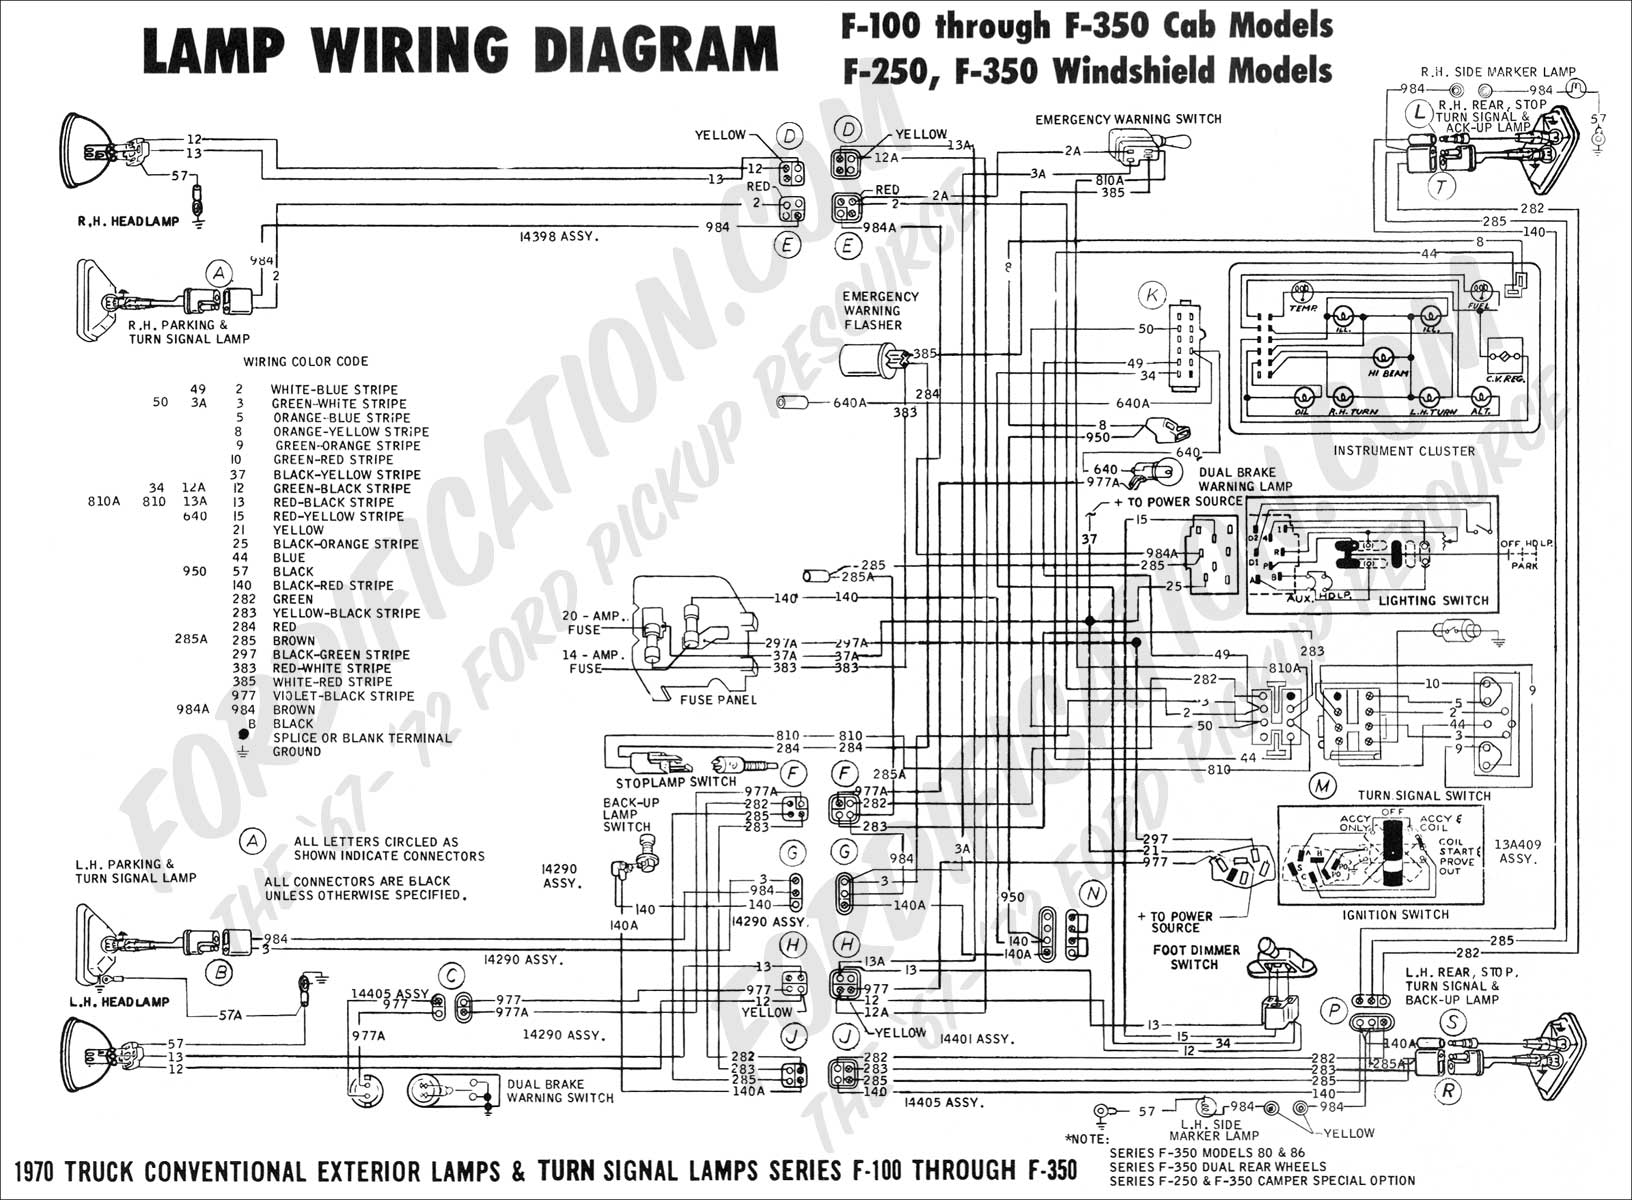 wiring diagram_70ext lights01 ford truck technical drawings and schematics section h wiring 1986 Ford F-250 Fuel System Wiring Diagram at suagrazia.org